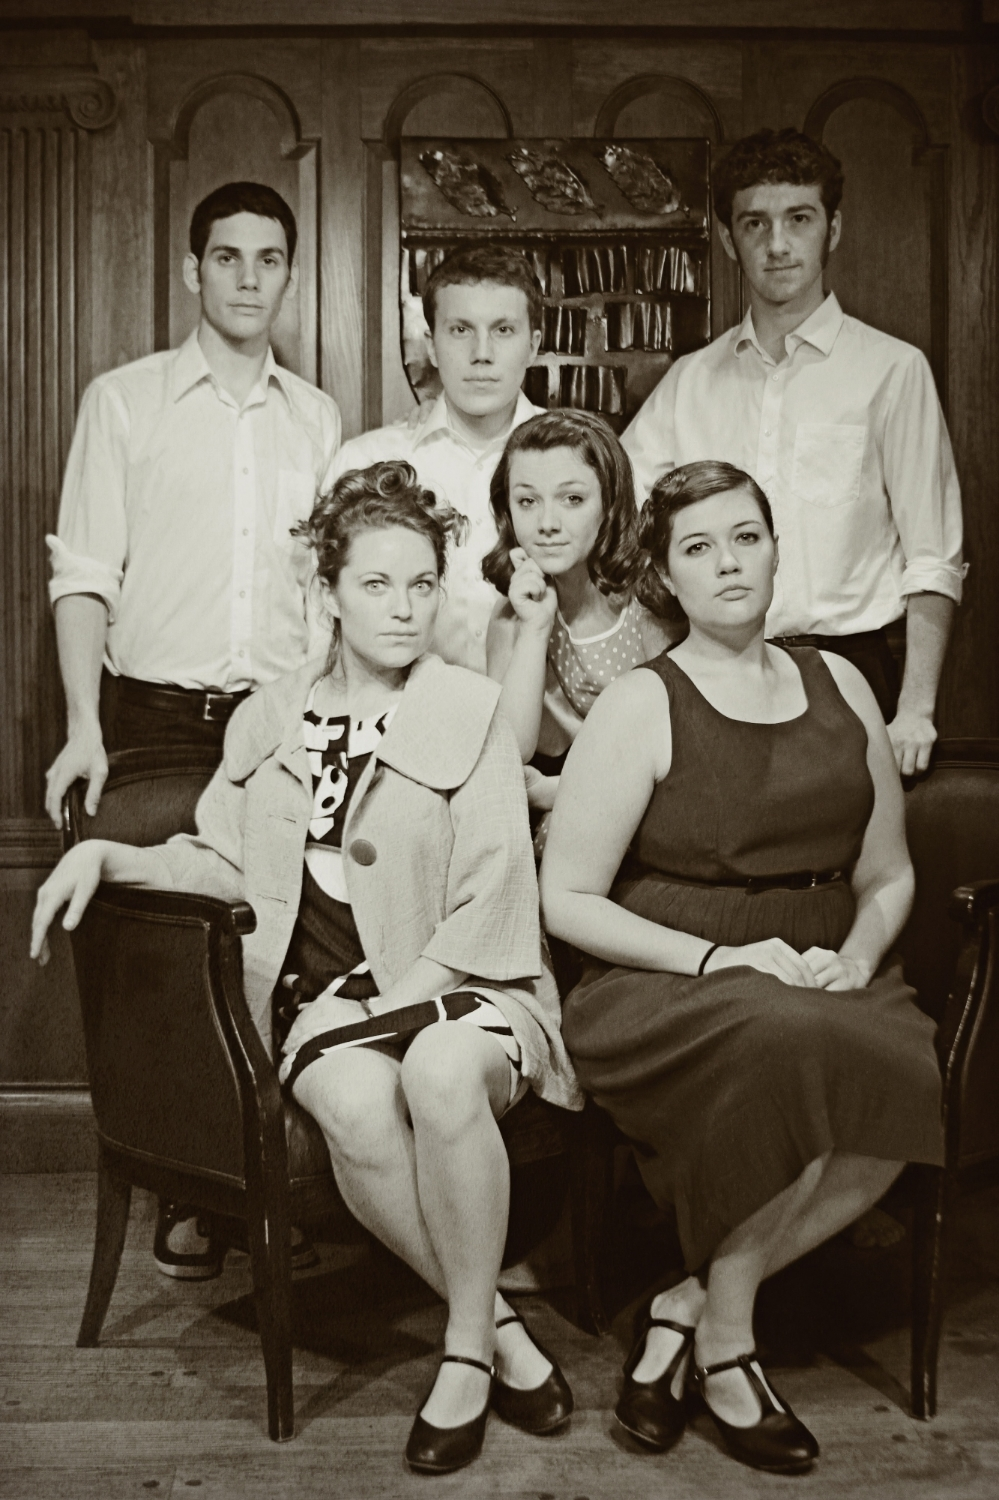 L to R : Buddy ( Richard Miron ), Bessie ( Hannah Loeb ), Zooey ( James Dieffenbach ), Young Franny ( Molly Sinnott ), Boo Boo ( Mary Bolt ), Seymour ( Tommy Bazarian ).